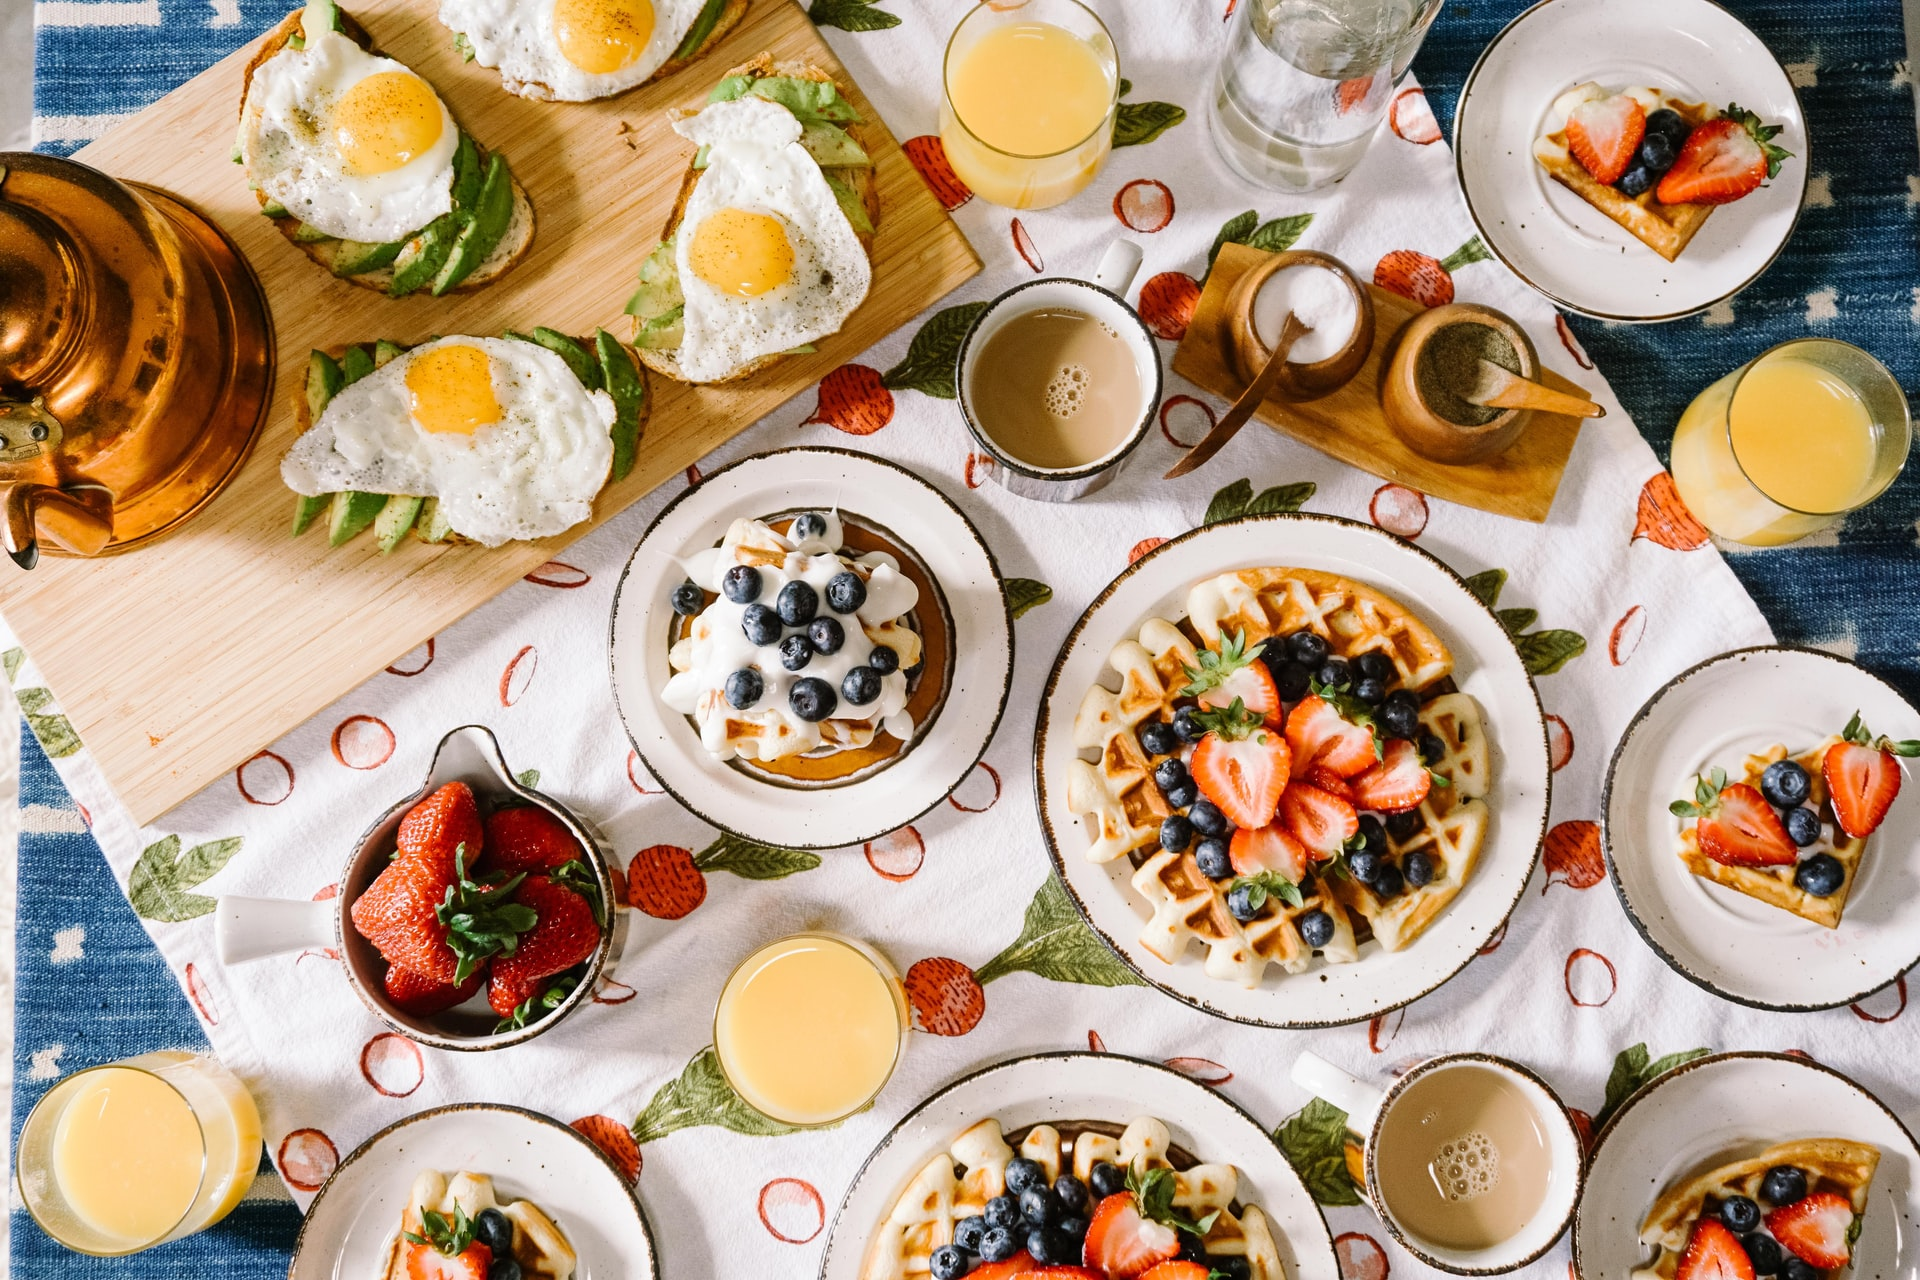 Image for blog Unconventional Brunch Recipes to Whip Up This Father's Day